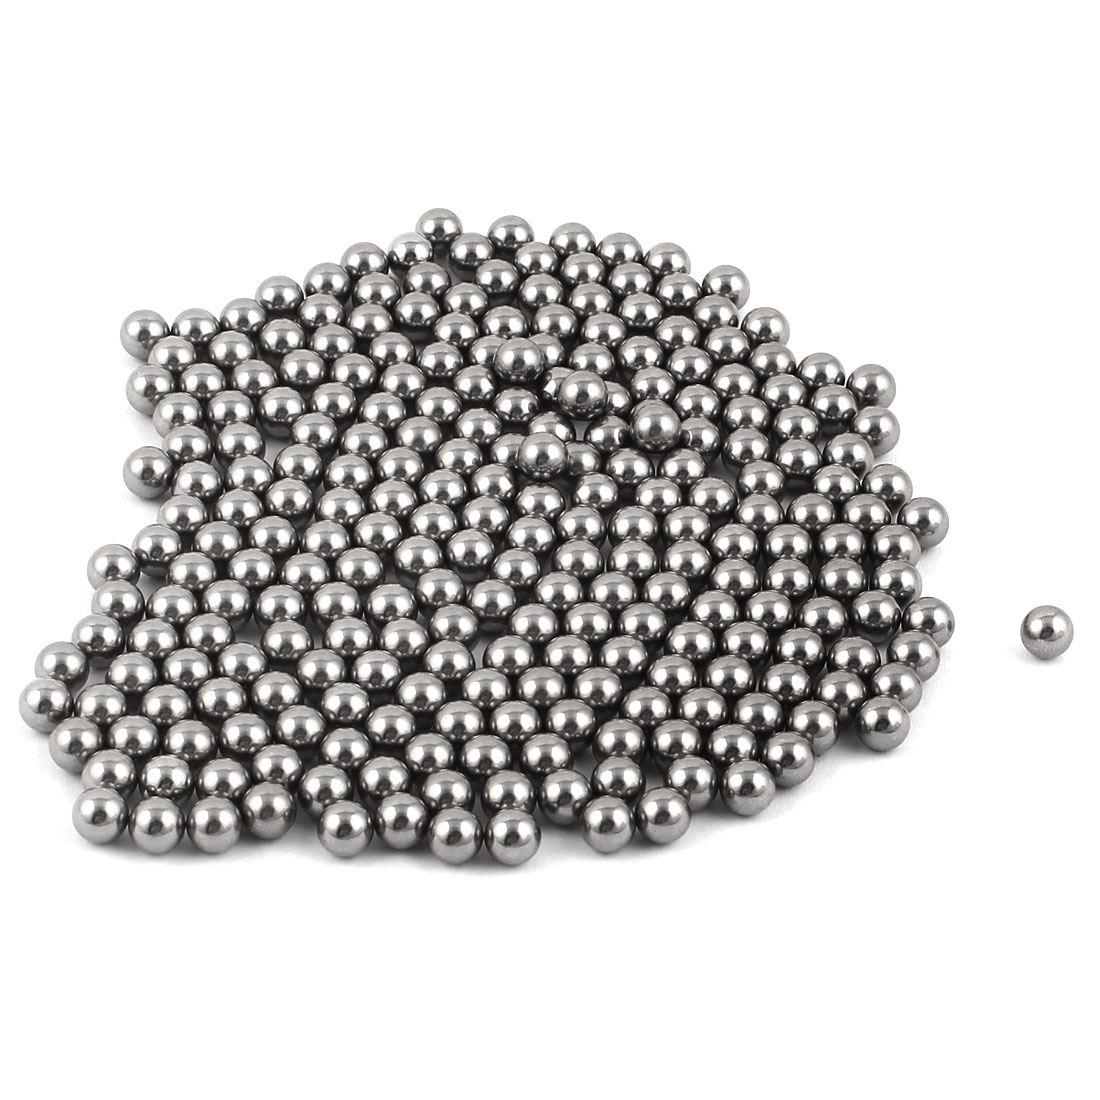 220 Pcs 6mm Diameter Steel Ball Bearings Bicycle Replacement Parts